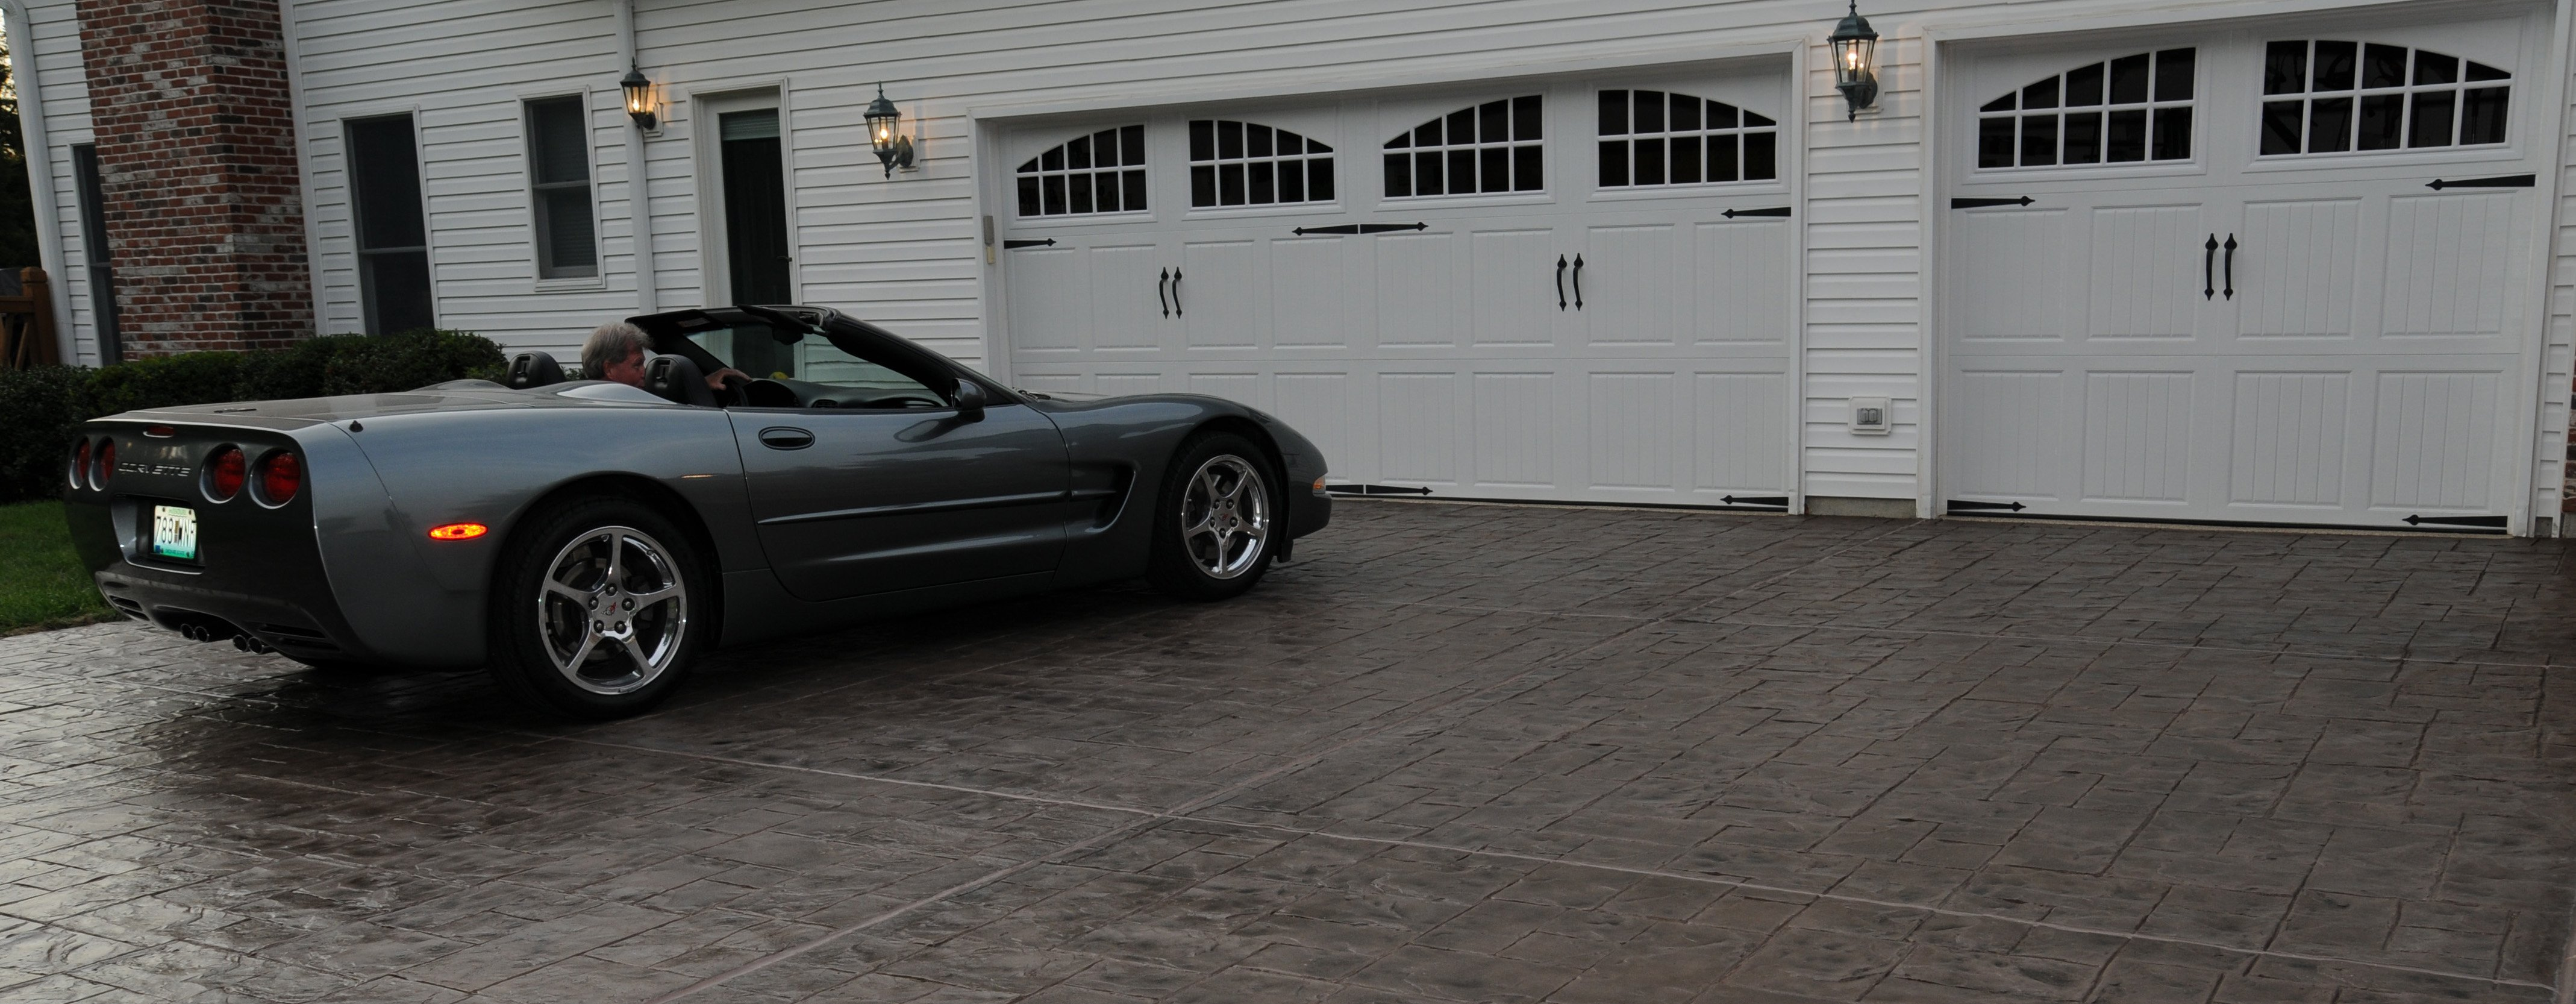 Textured driveway with a sporty car